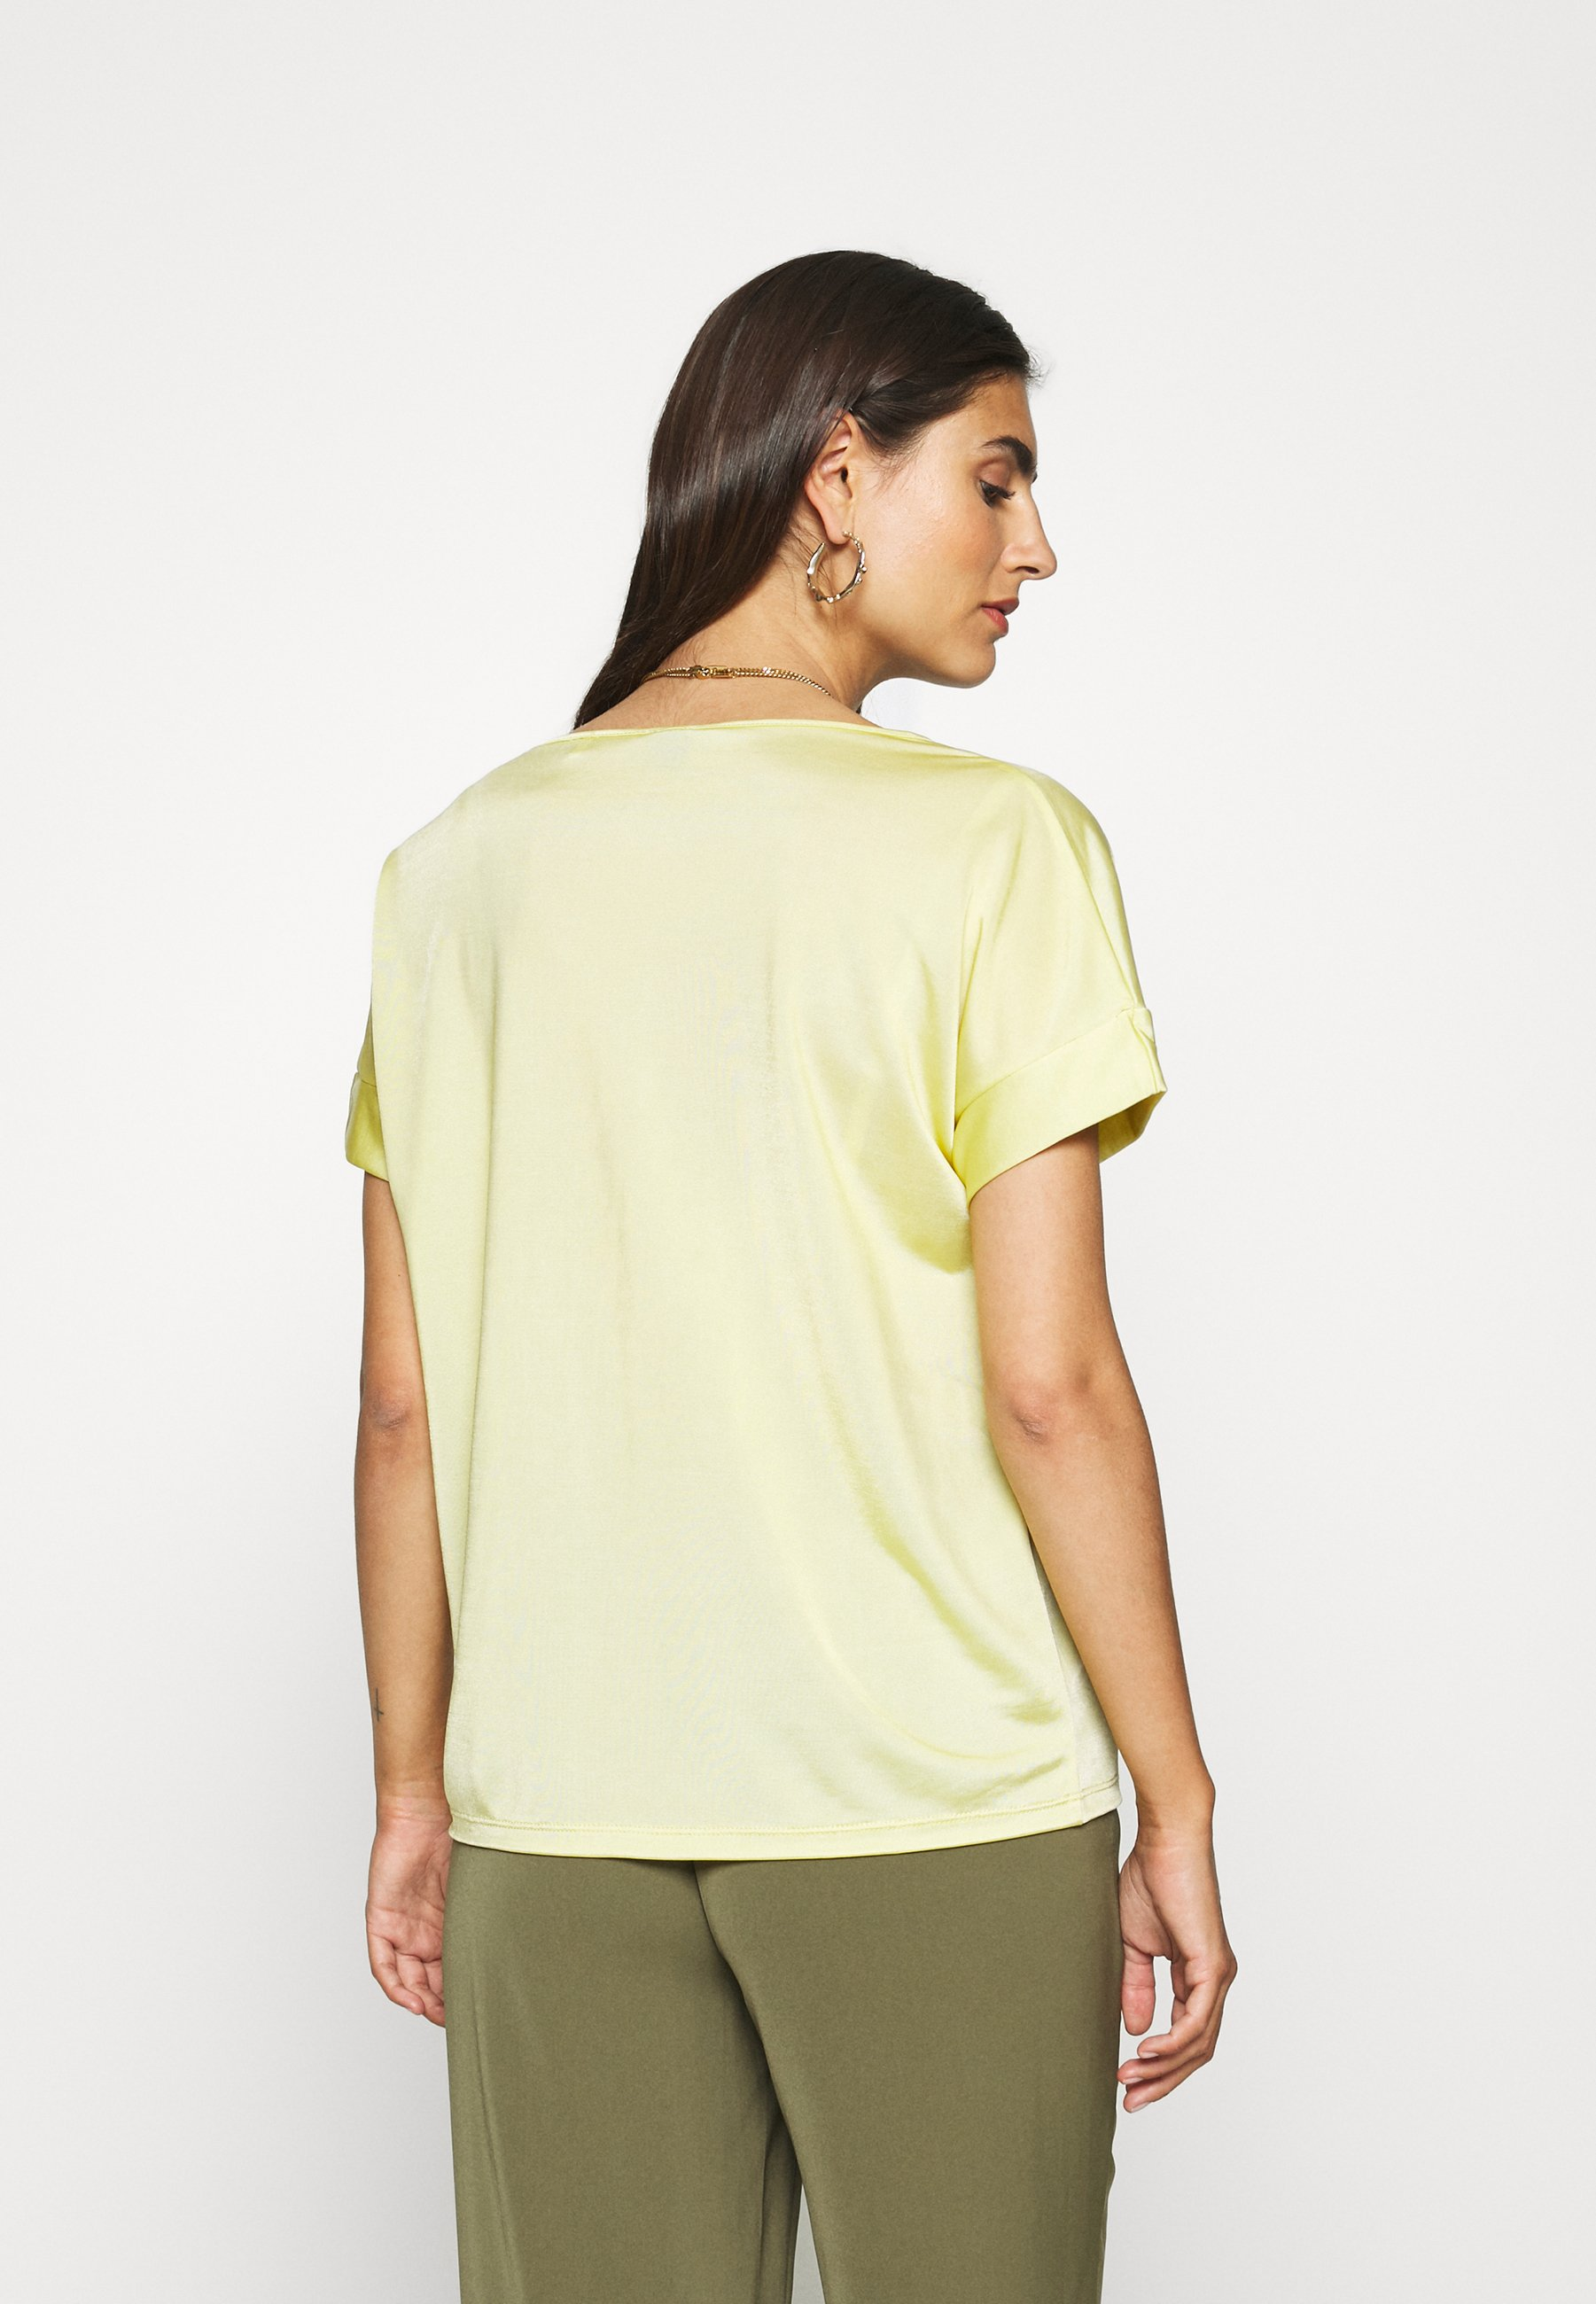 S.oliver Black Label T-shirts Med Print - Sorbet Yellow/lysegul